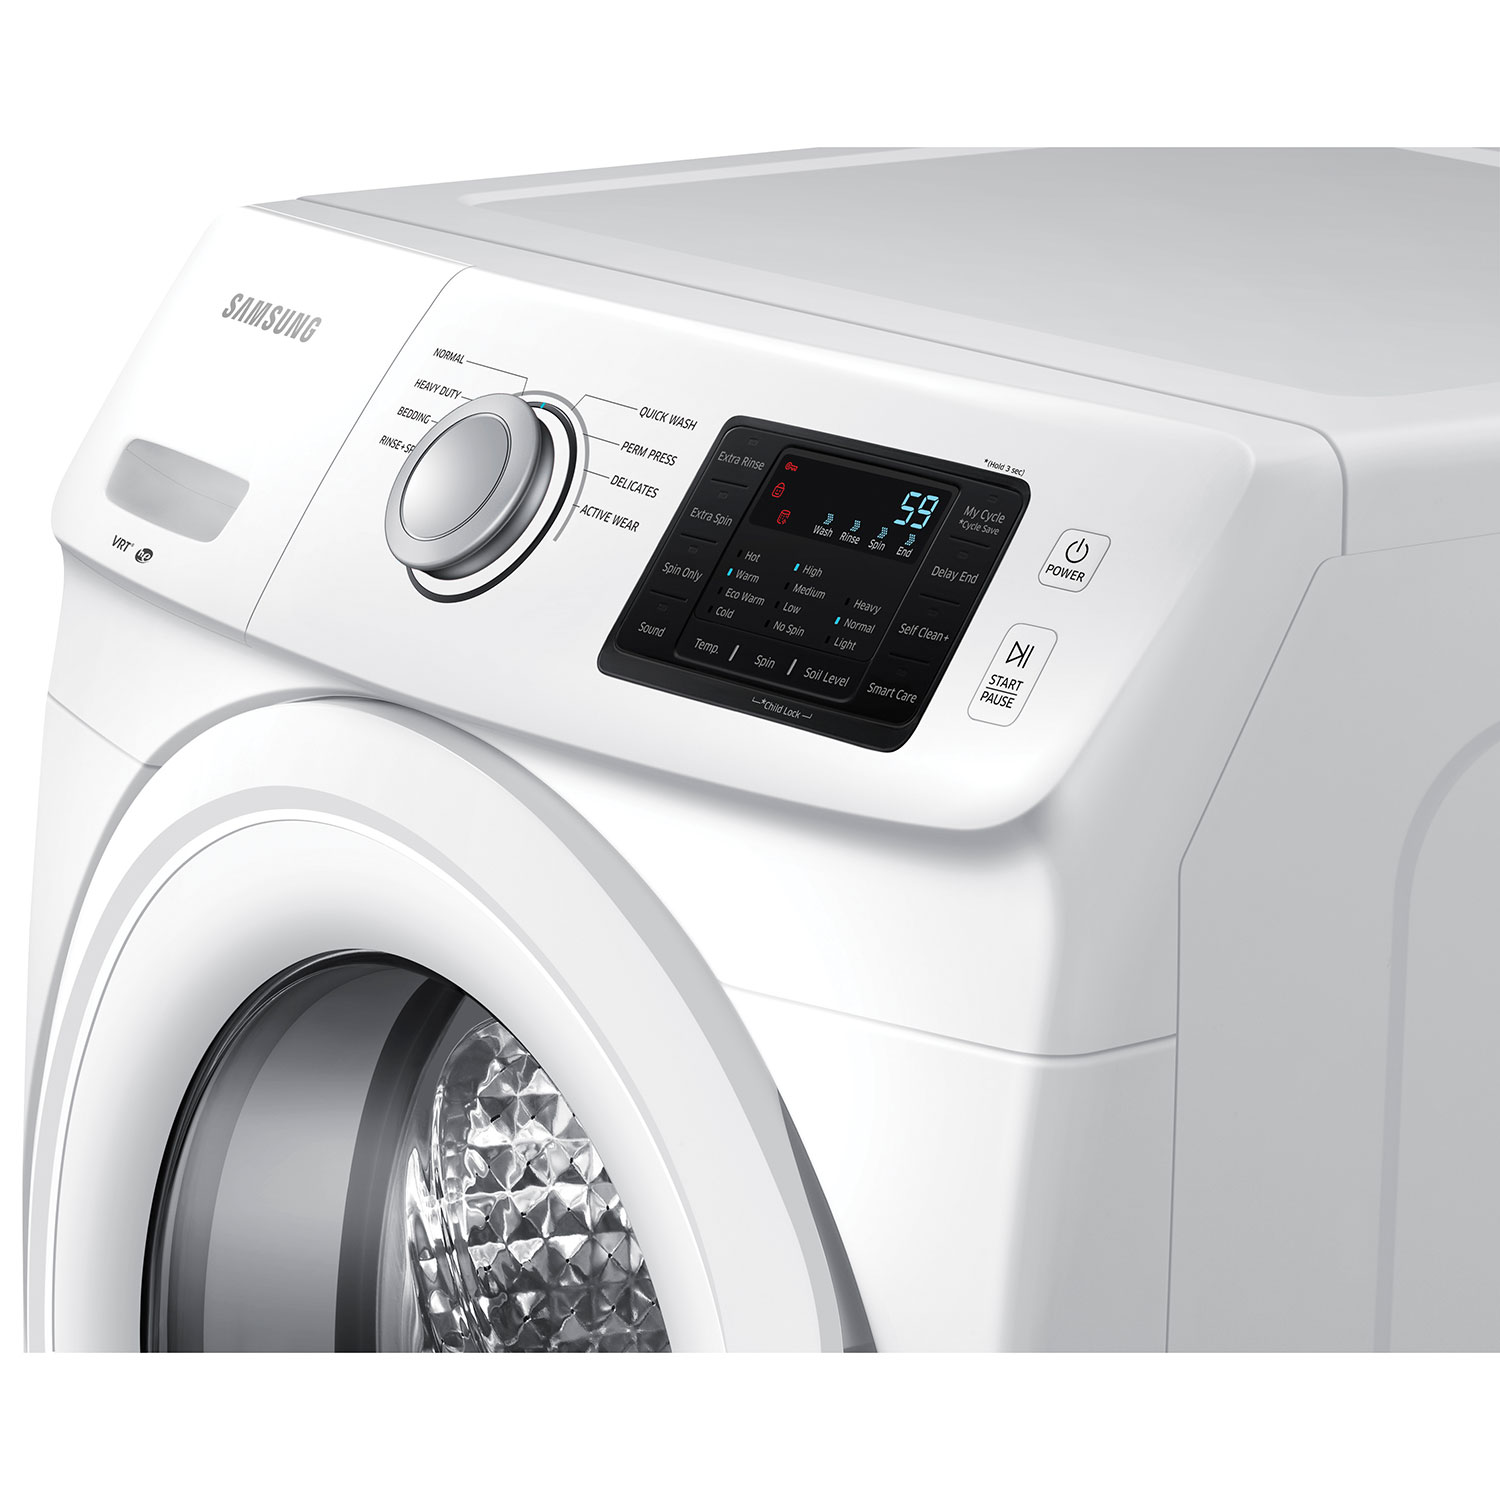 How Do High Efficiency Washers Work Samsung 48 Cu Ft High Efficiency Front Load Washer Wf42h5000aw